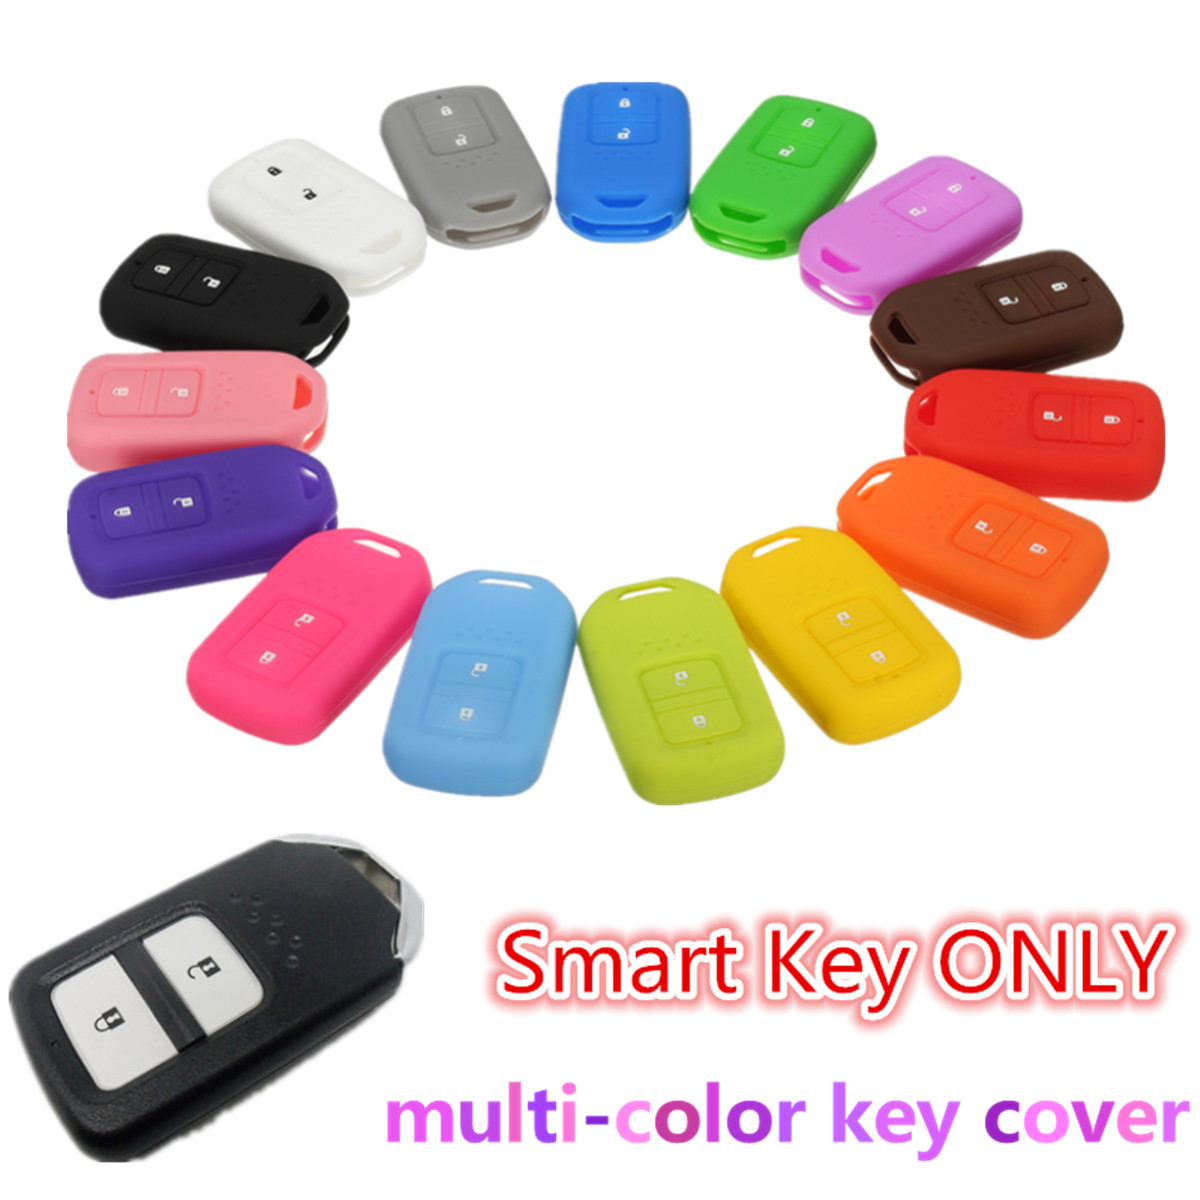 Silicone 2 Button Smart Keyless Remote Key Case Fob Cover Holder For Honda /VEZEL /HR-V /JAZZ /CIVIC /ACCORD /ODYSSEY new car remote key fob cover case holder protect for honda 2016 2017 crv pilot accord civic fit freed keyless entry car styling